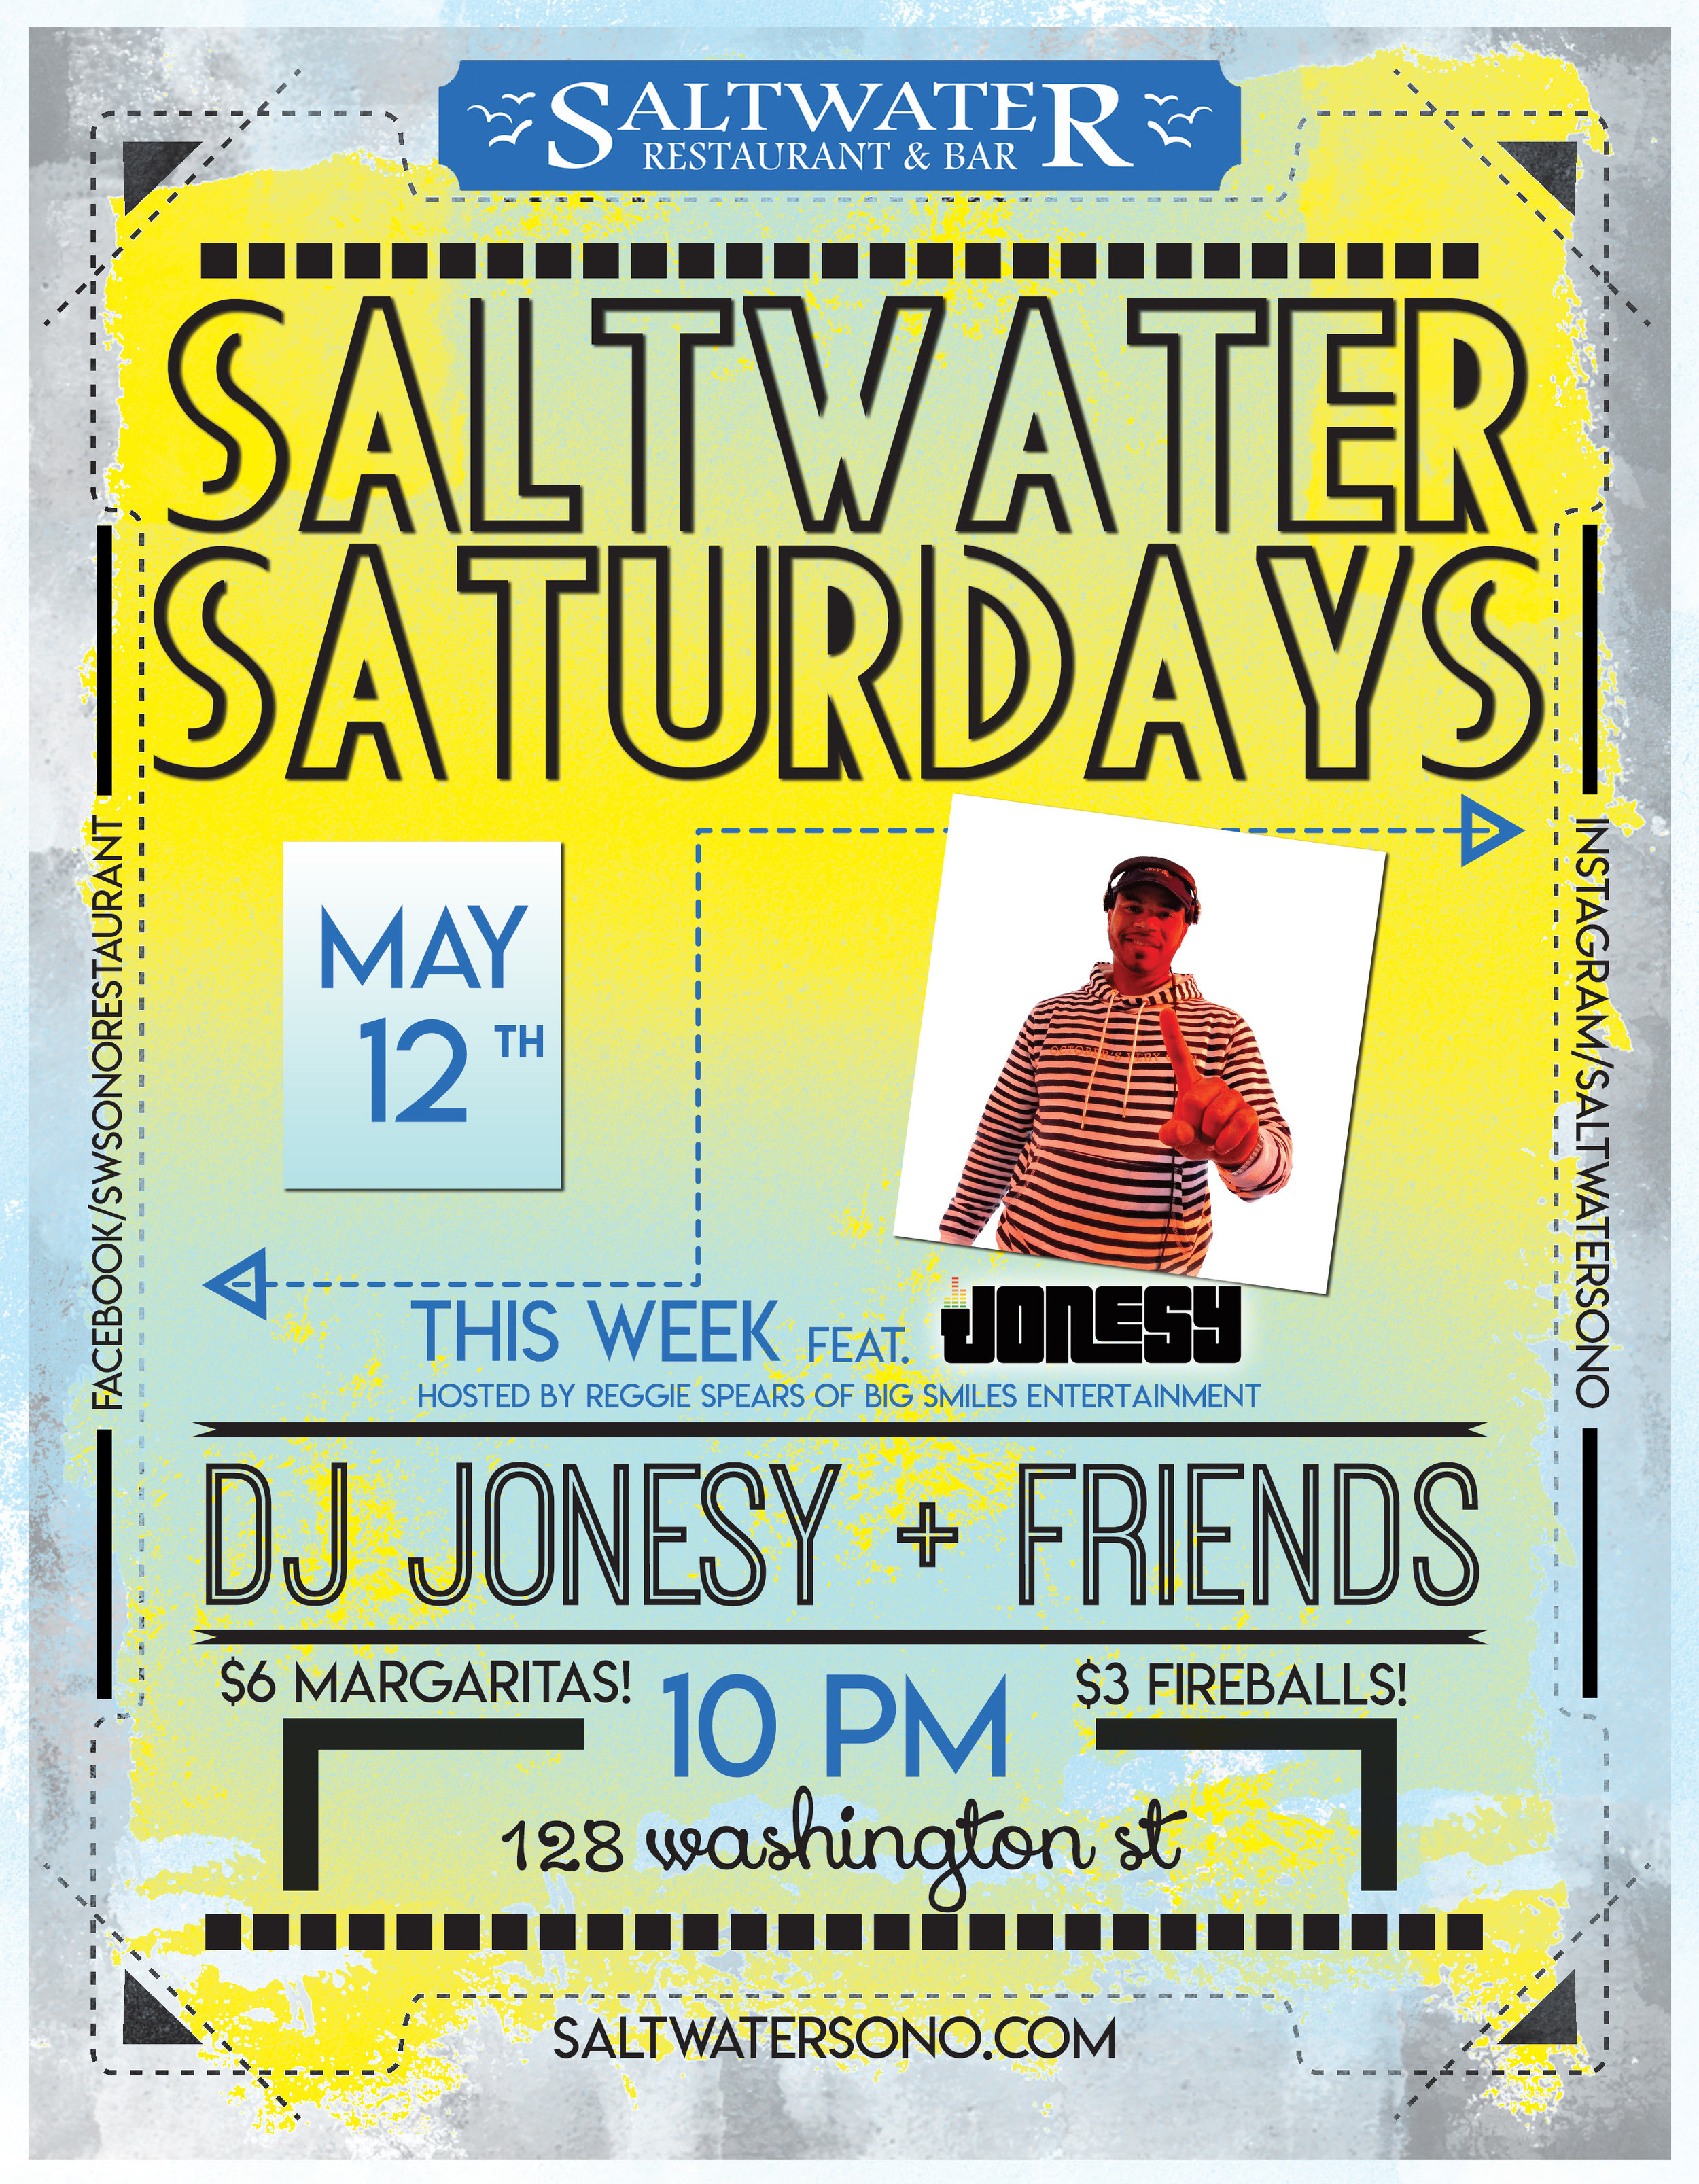 saltwater-saturdays-may12.jpg